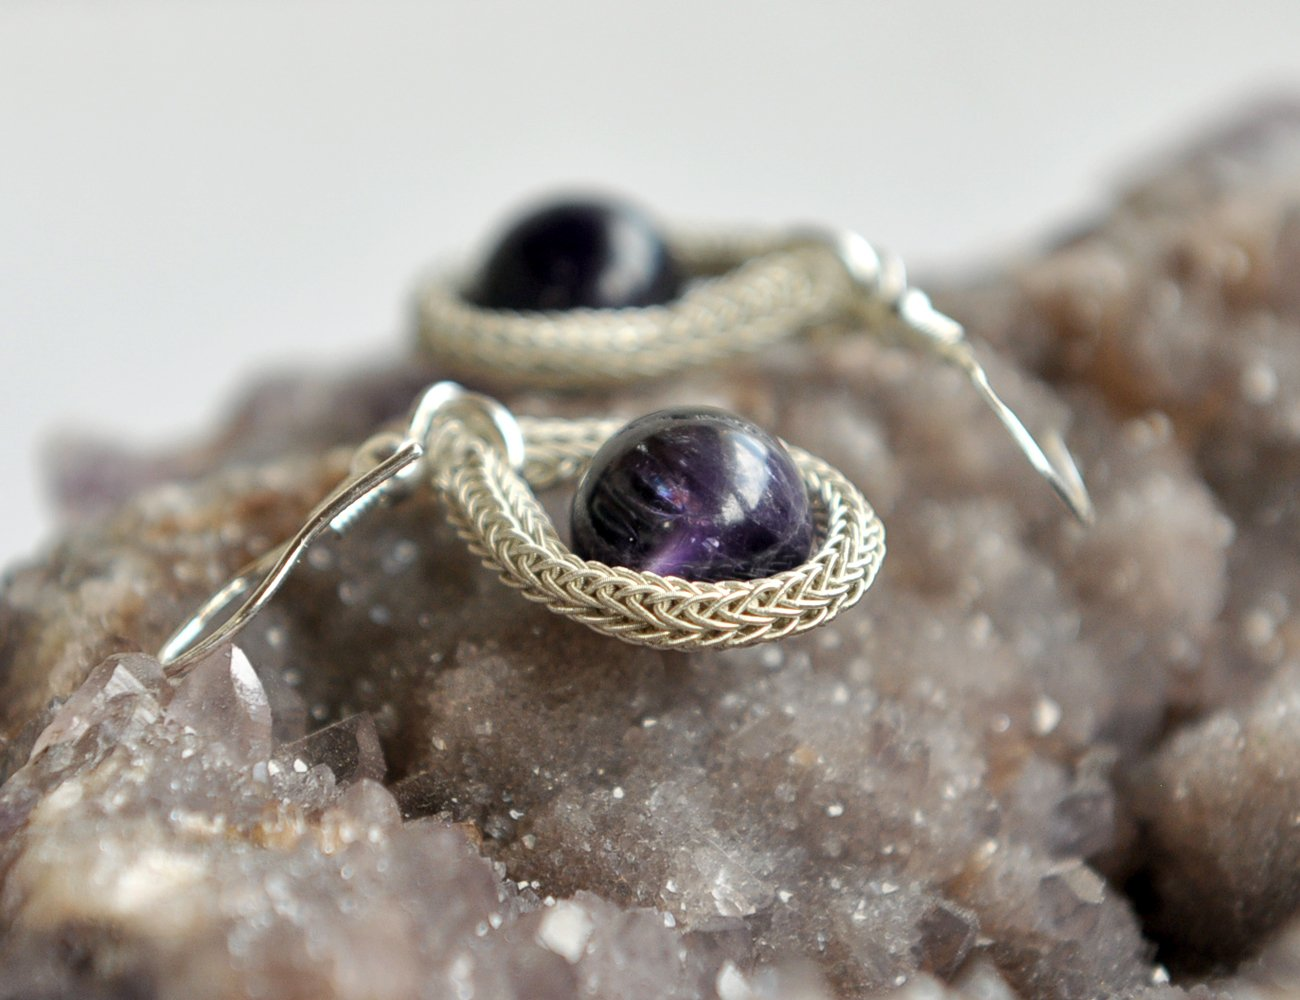 Sterling Silver Earrings, Viking Knit Chain Earrings, Amethyst Earrings, Dangle and Drop 925 Silver Earrings, Needle Art Wrapping Jewelry